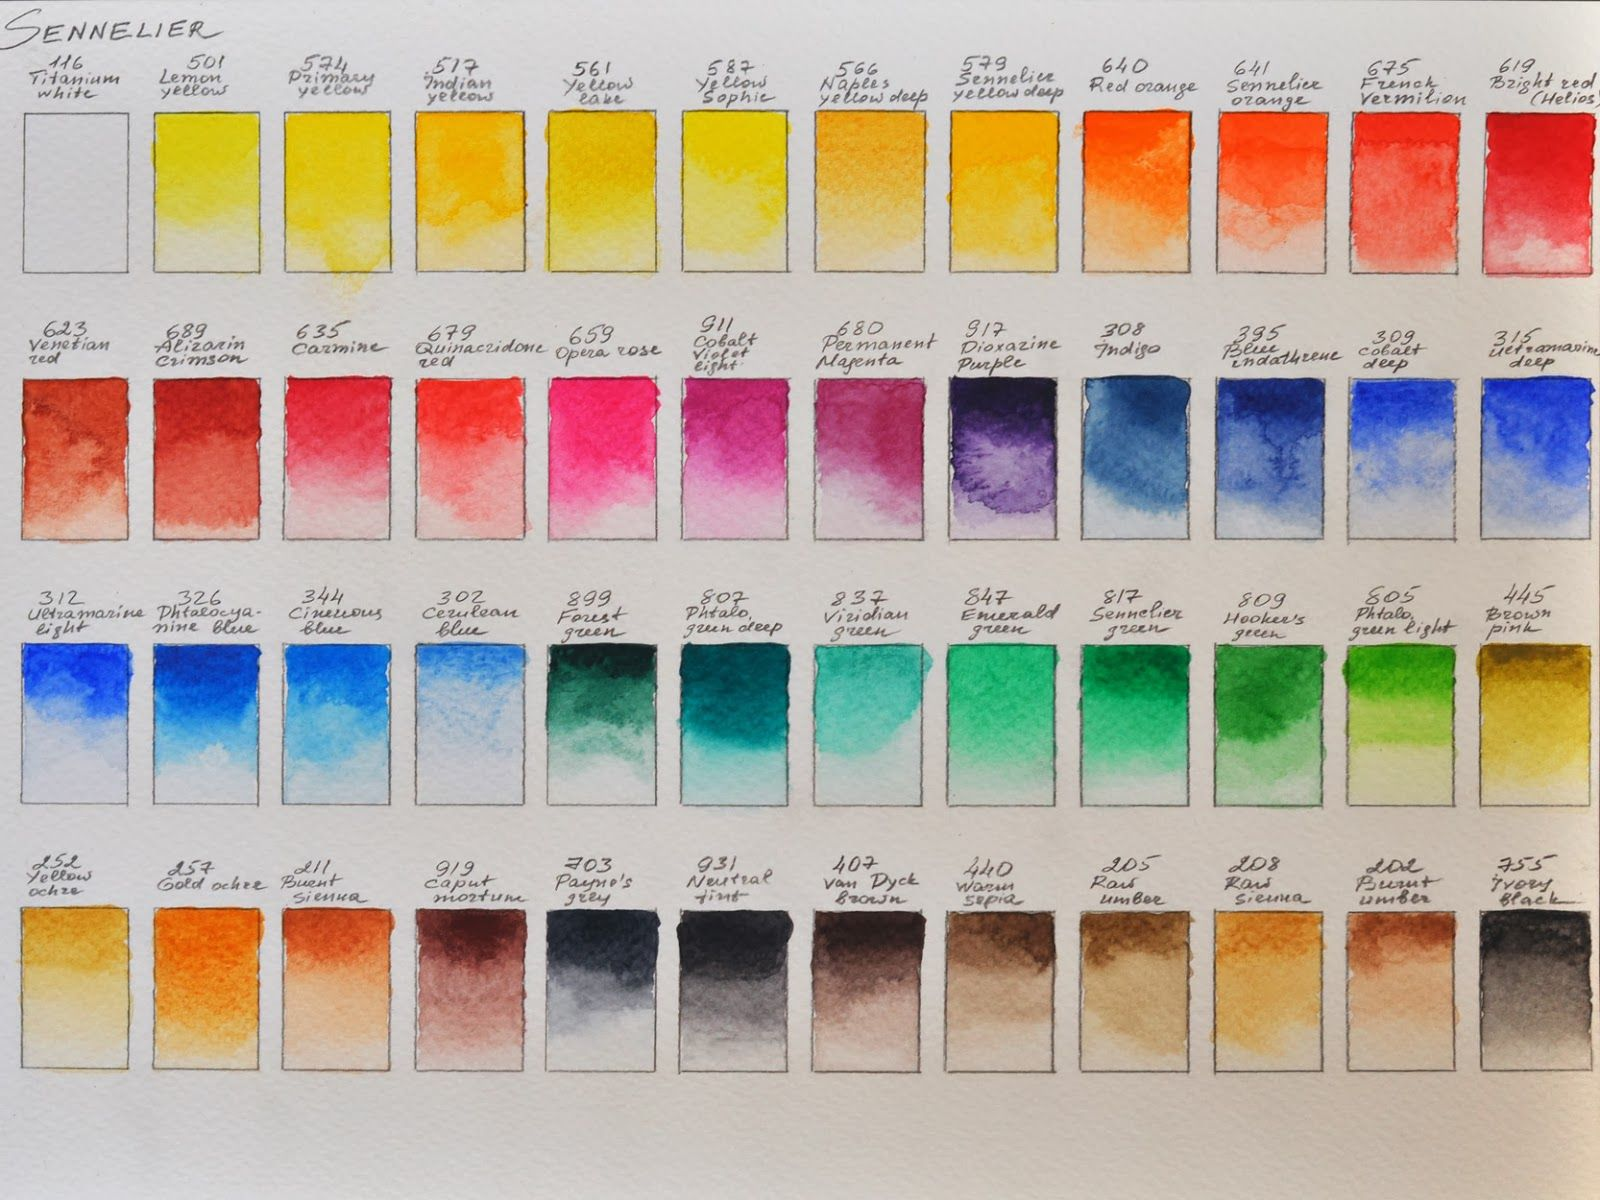 Sennelier Watercolors In A Good Order Aquarel Kleurkaarten Kleuren